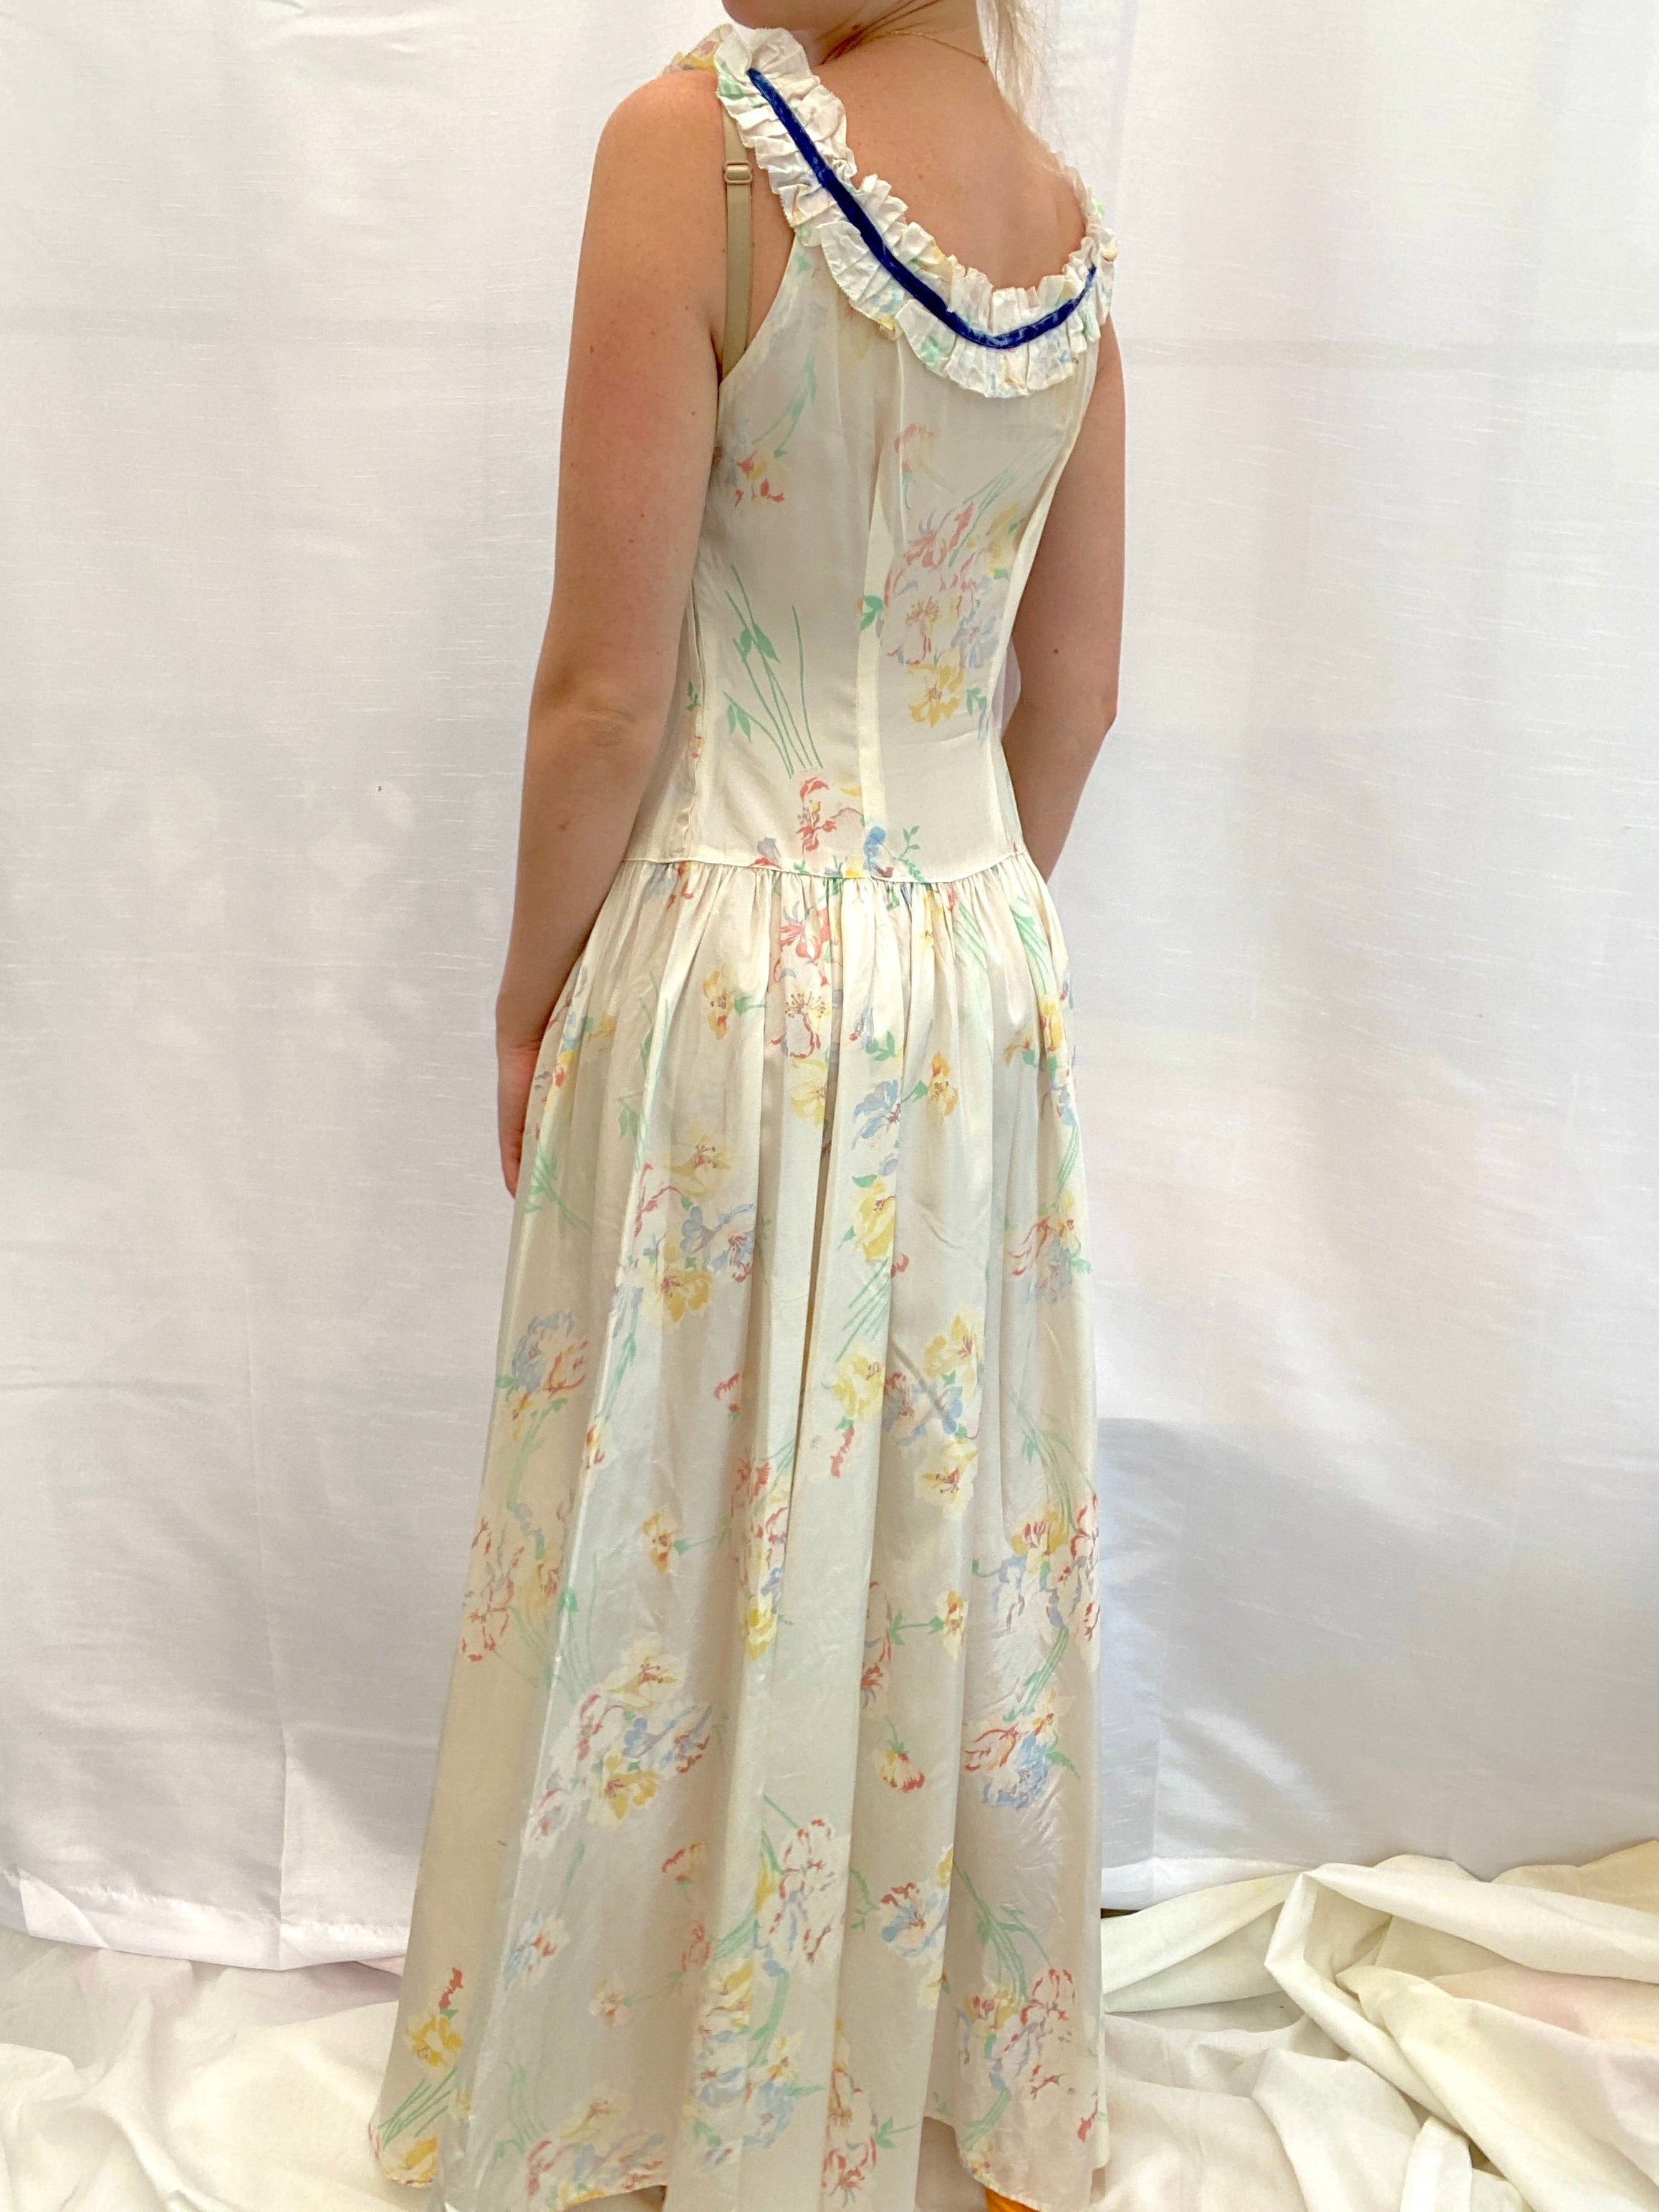 1930's Floral Print Taffeta Dress